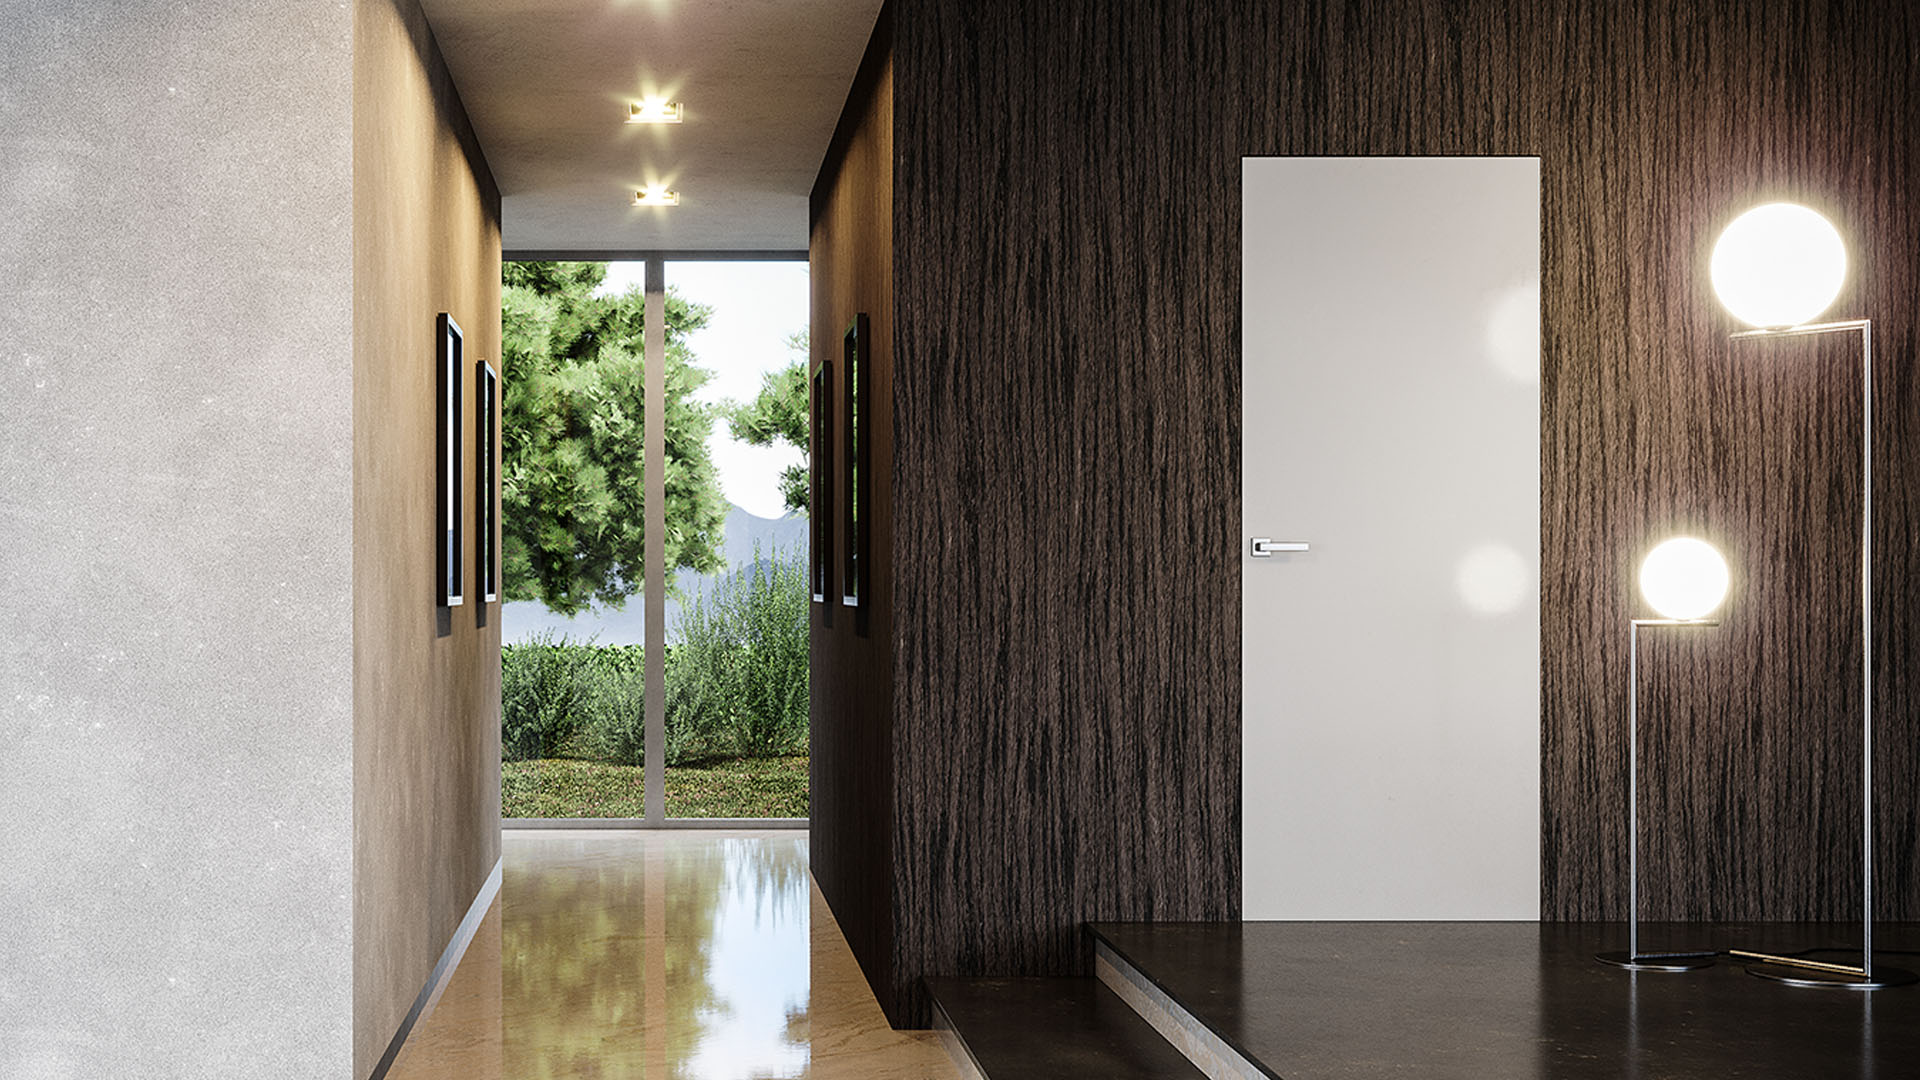 Porte Filo Muro Opinioni ermetika - frameless and sliding door systems